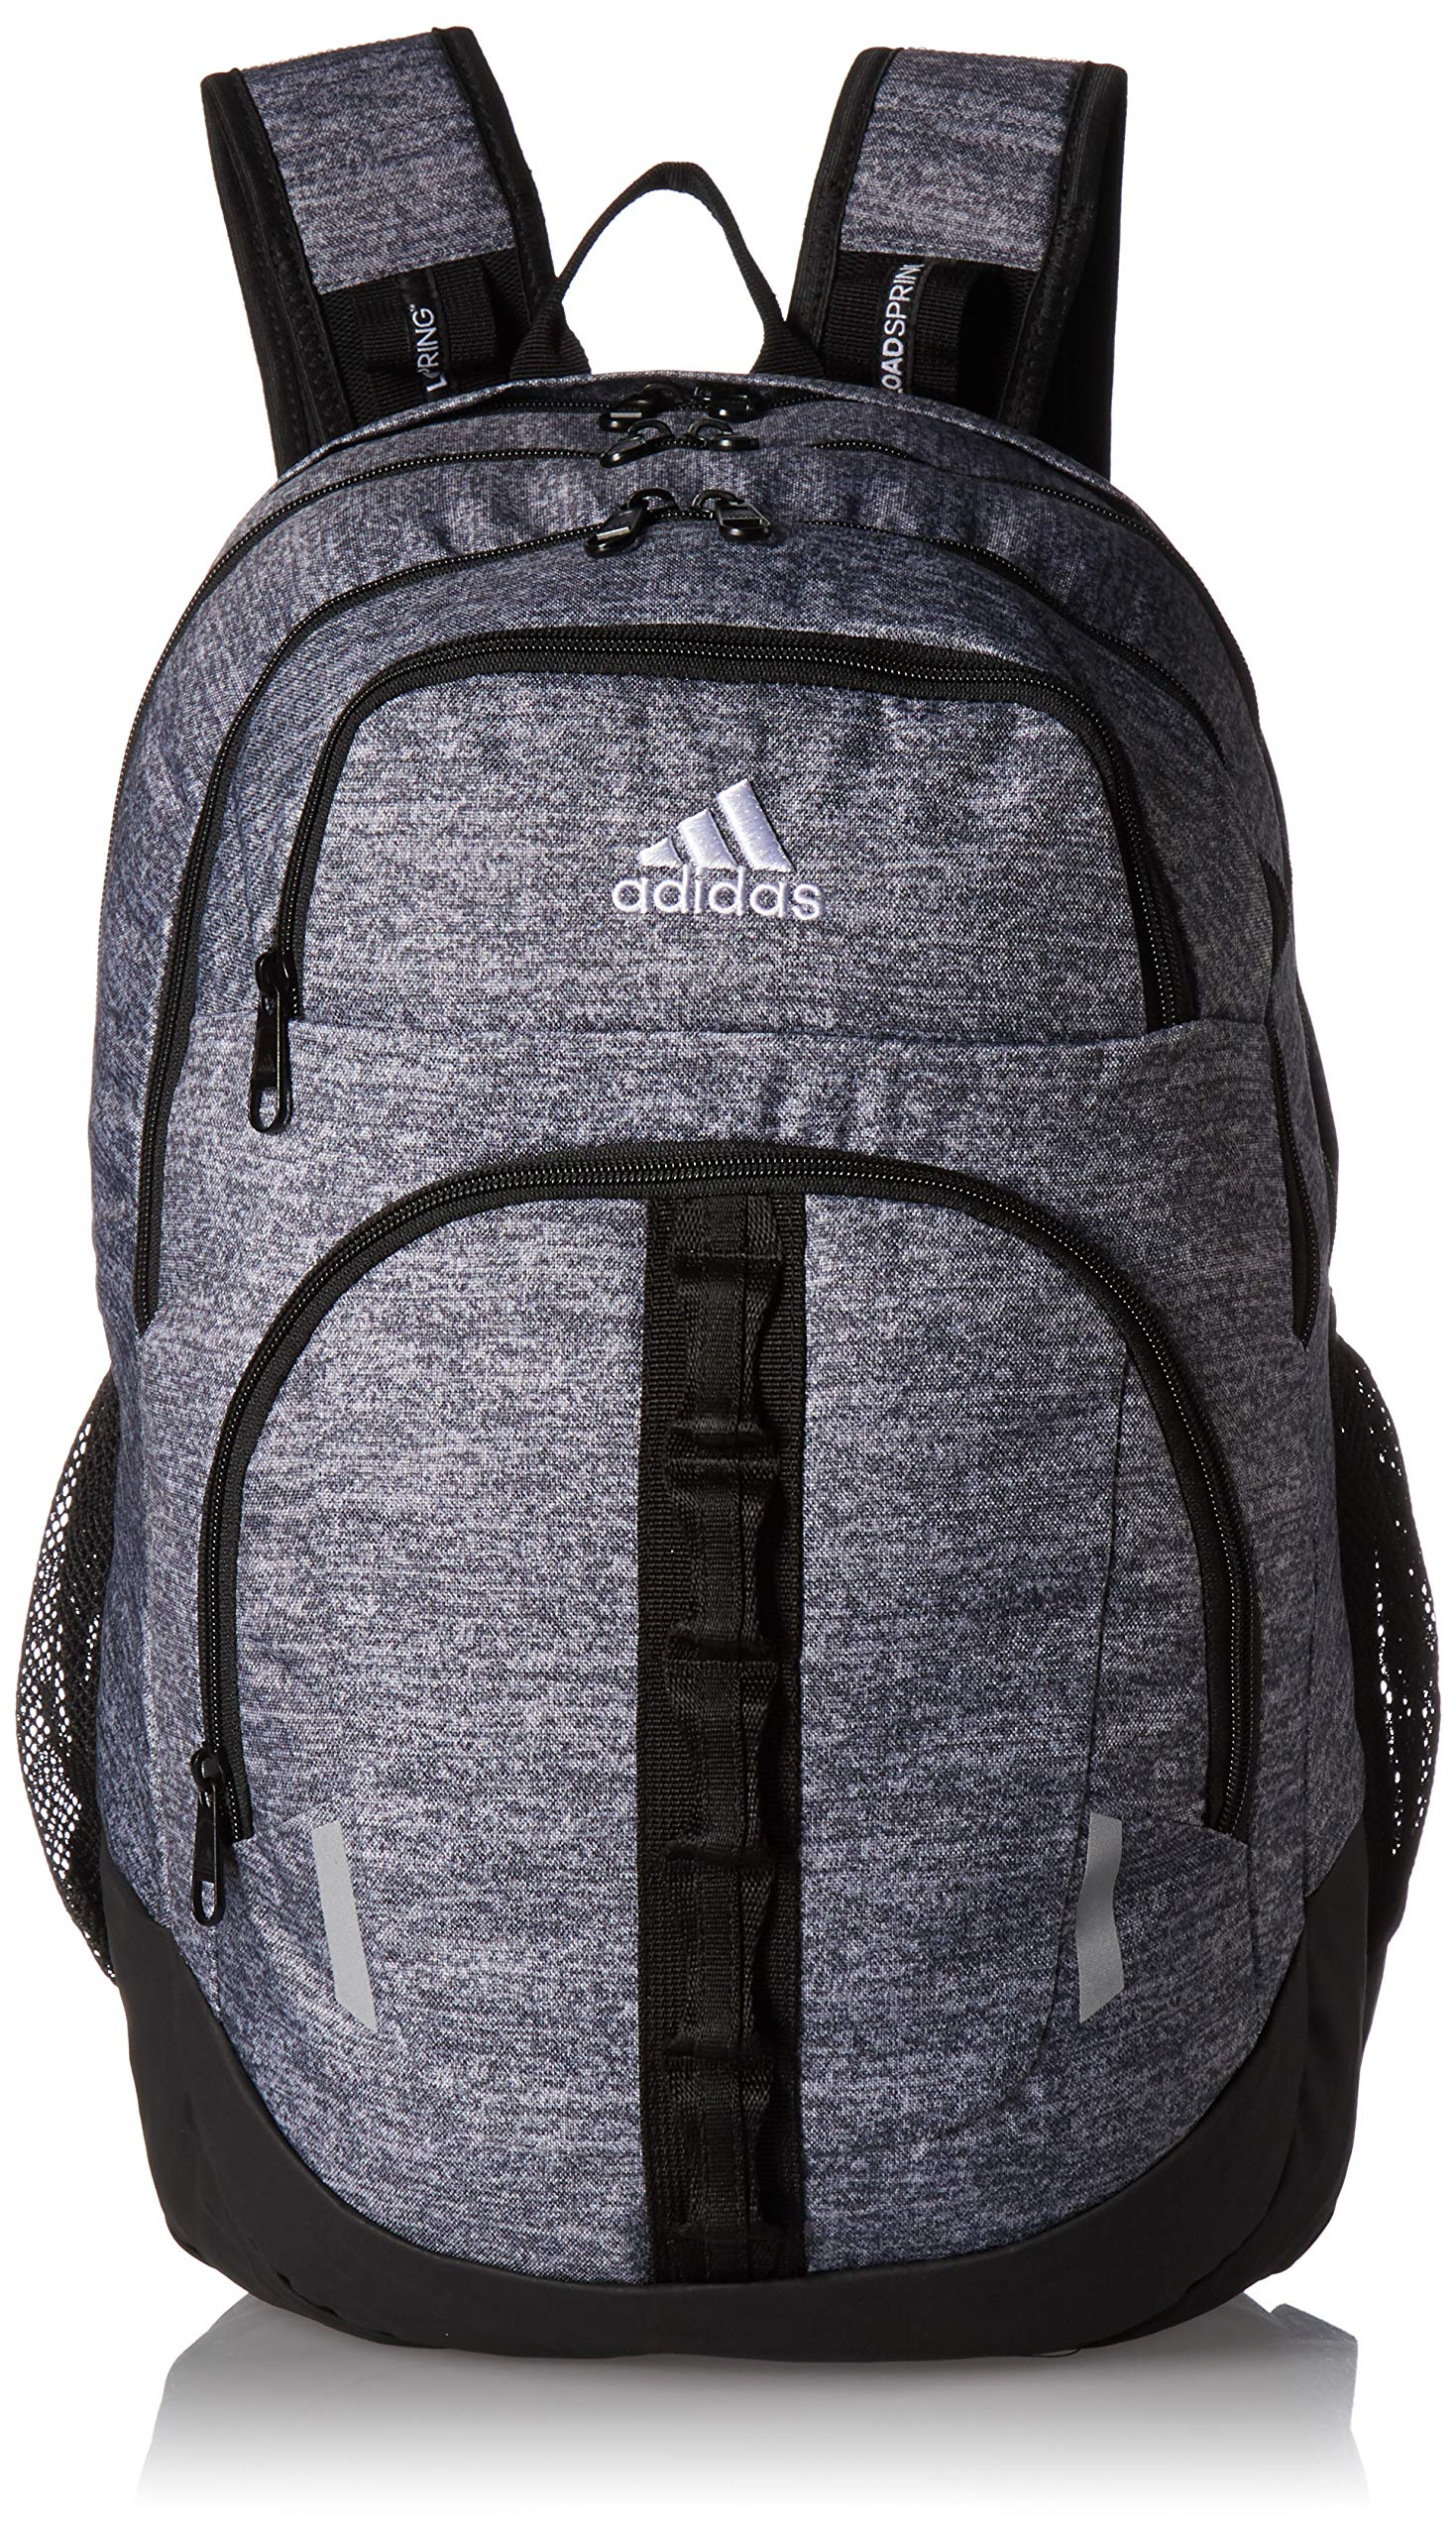 adidas Unisex Prime Backpack, Onix Jersey/Black, ONE SIZE by adidas